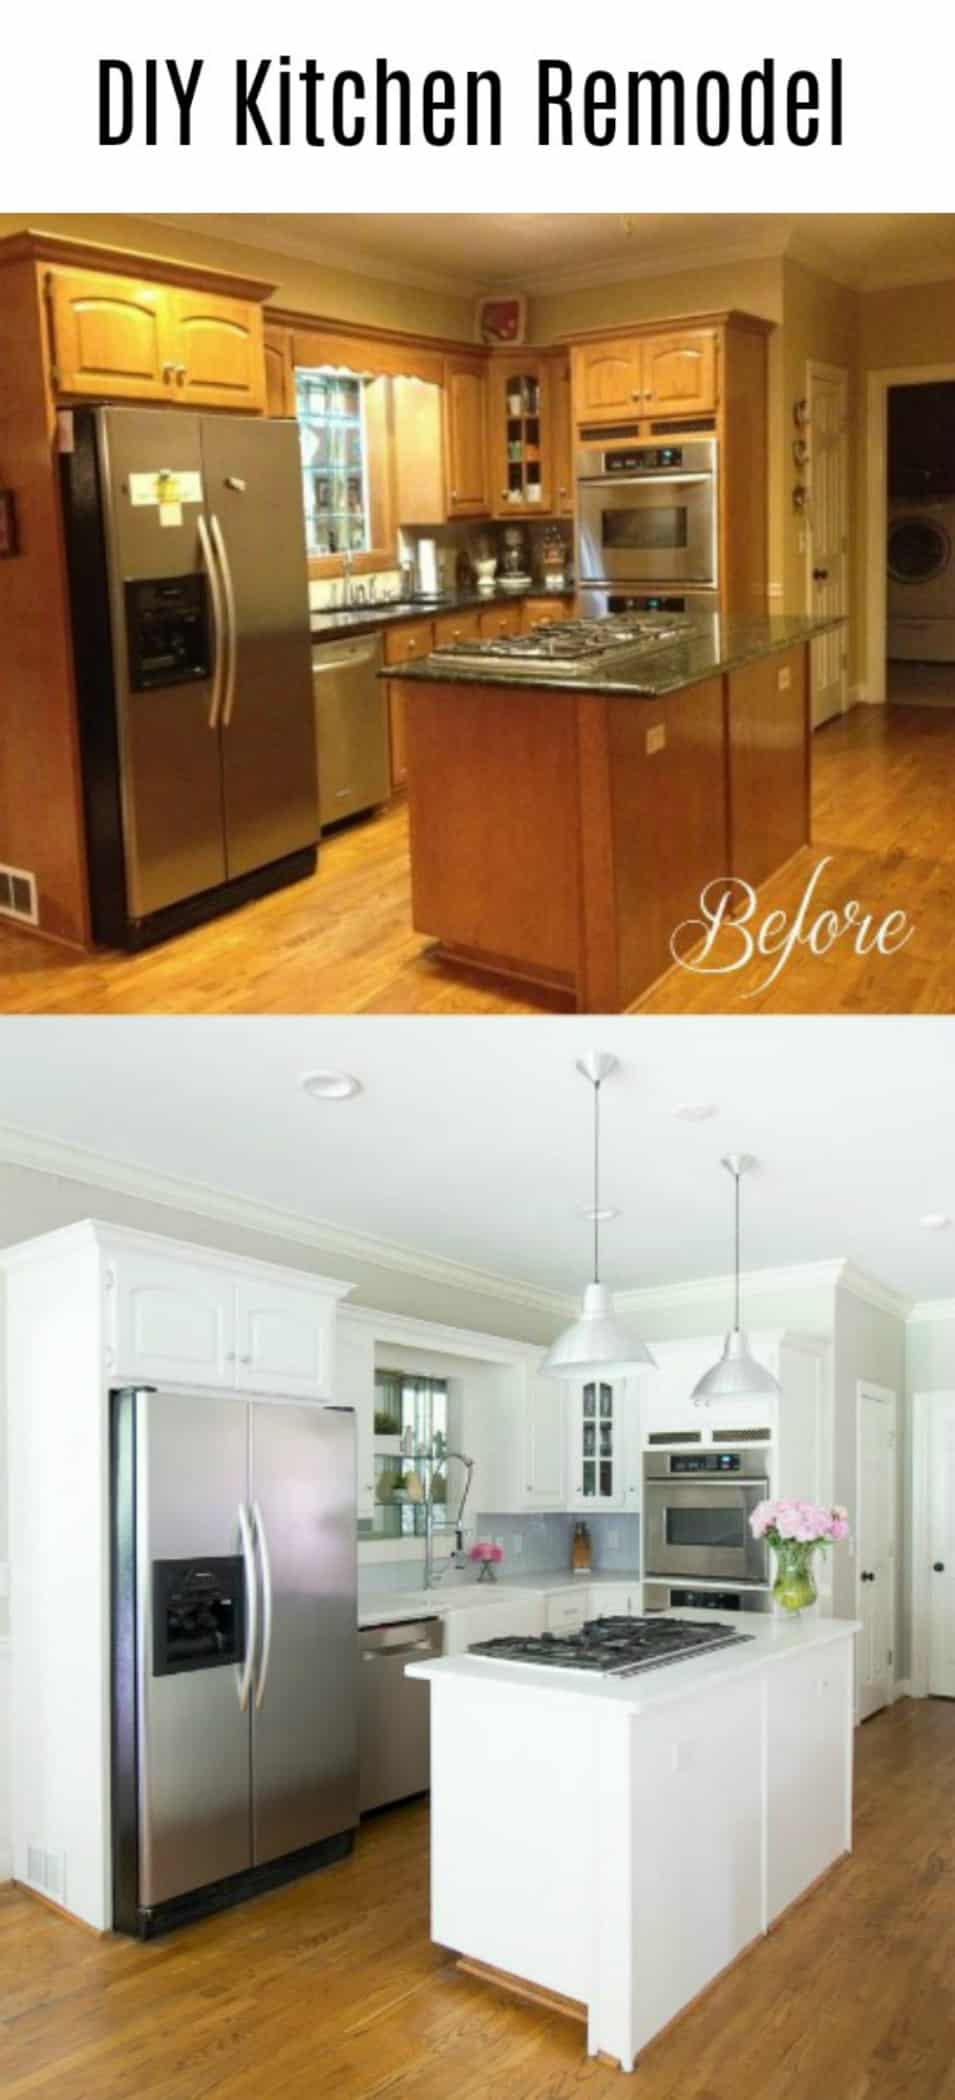 DIY Kitchen Remodel Reveal